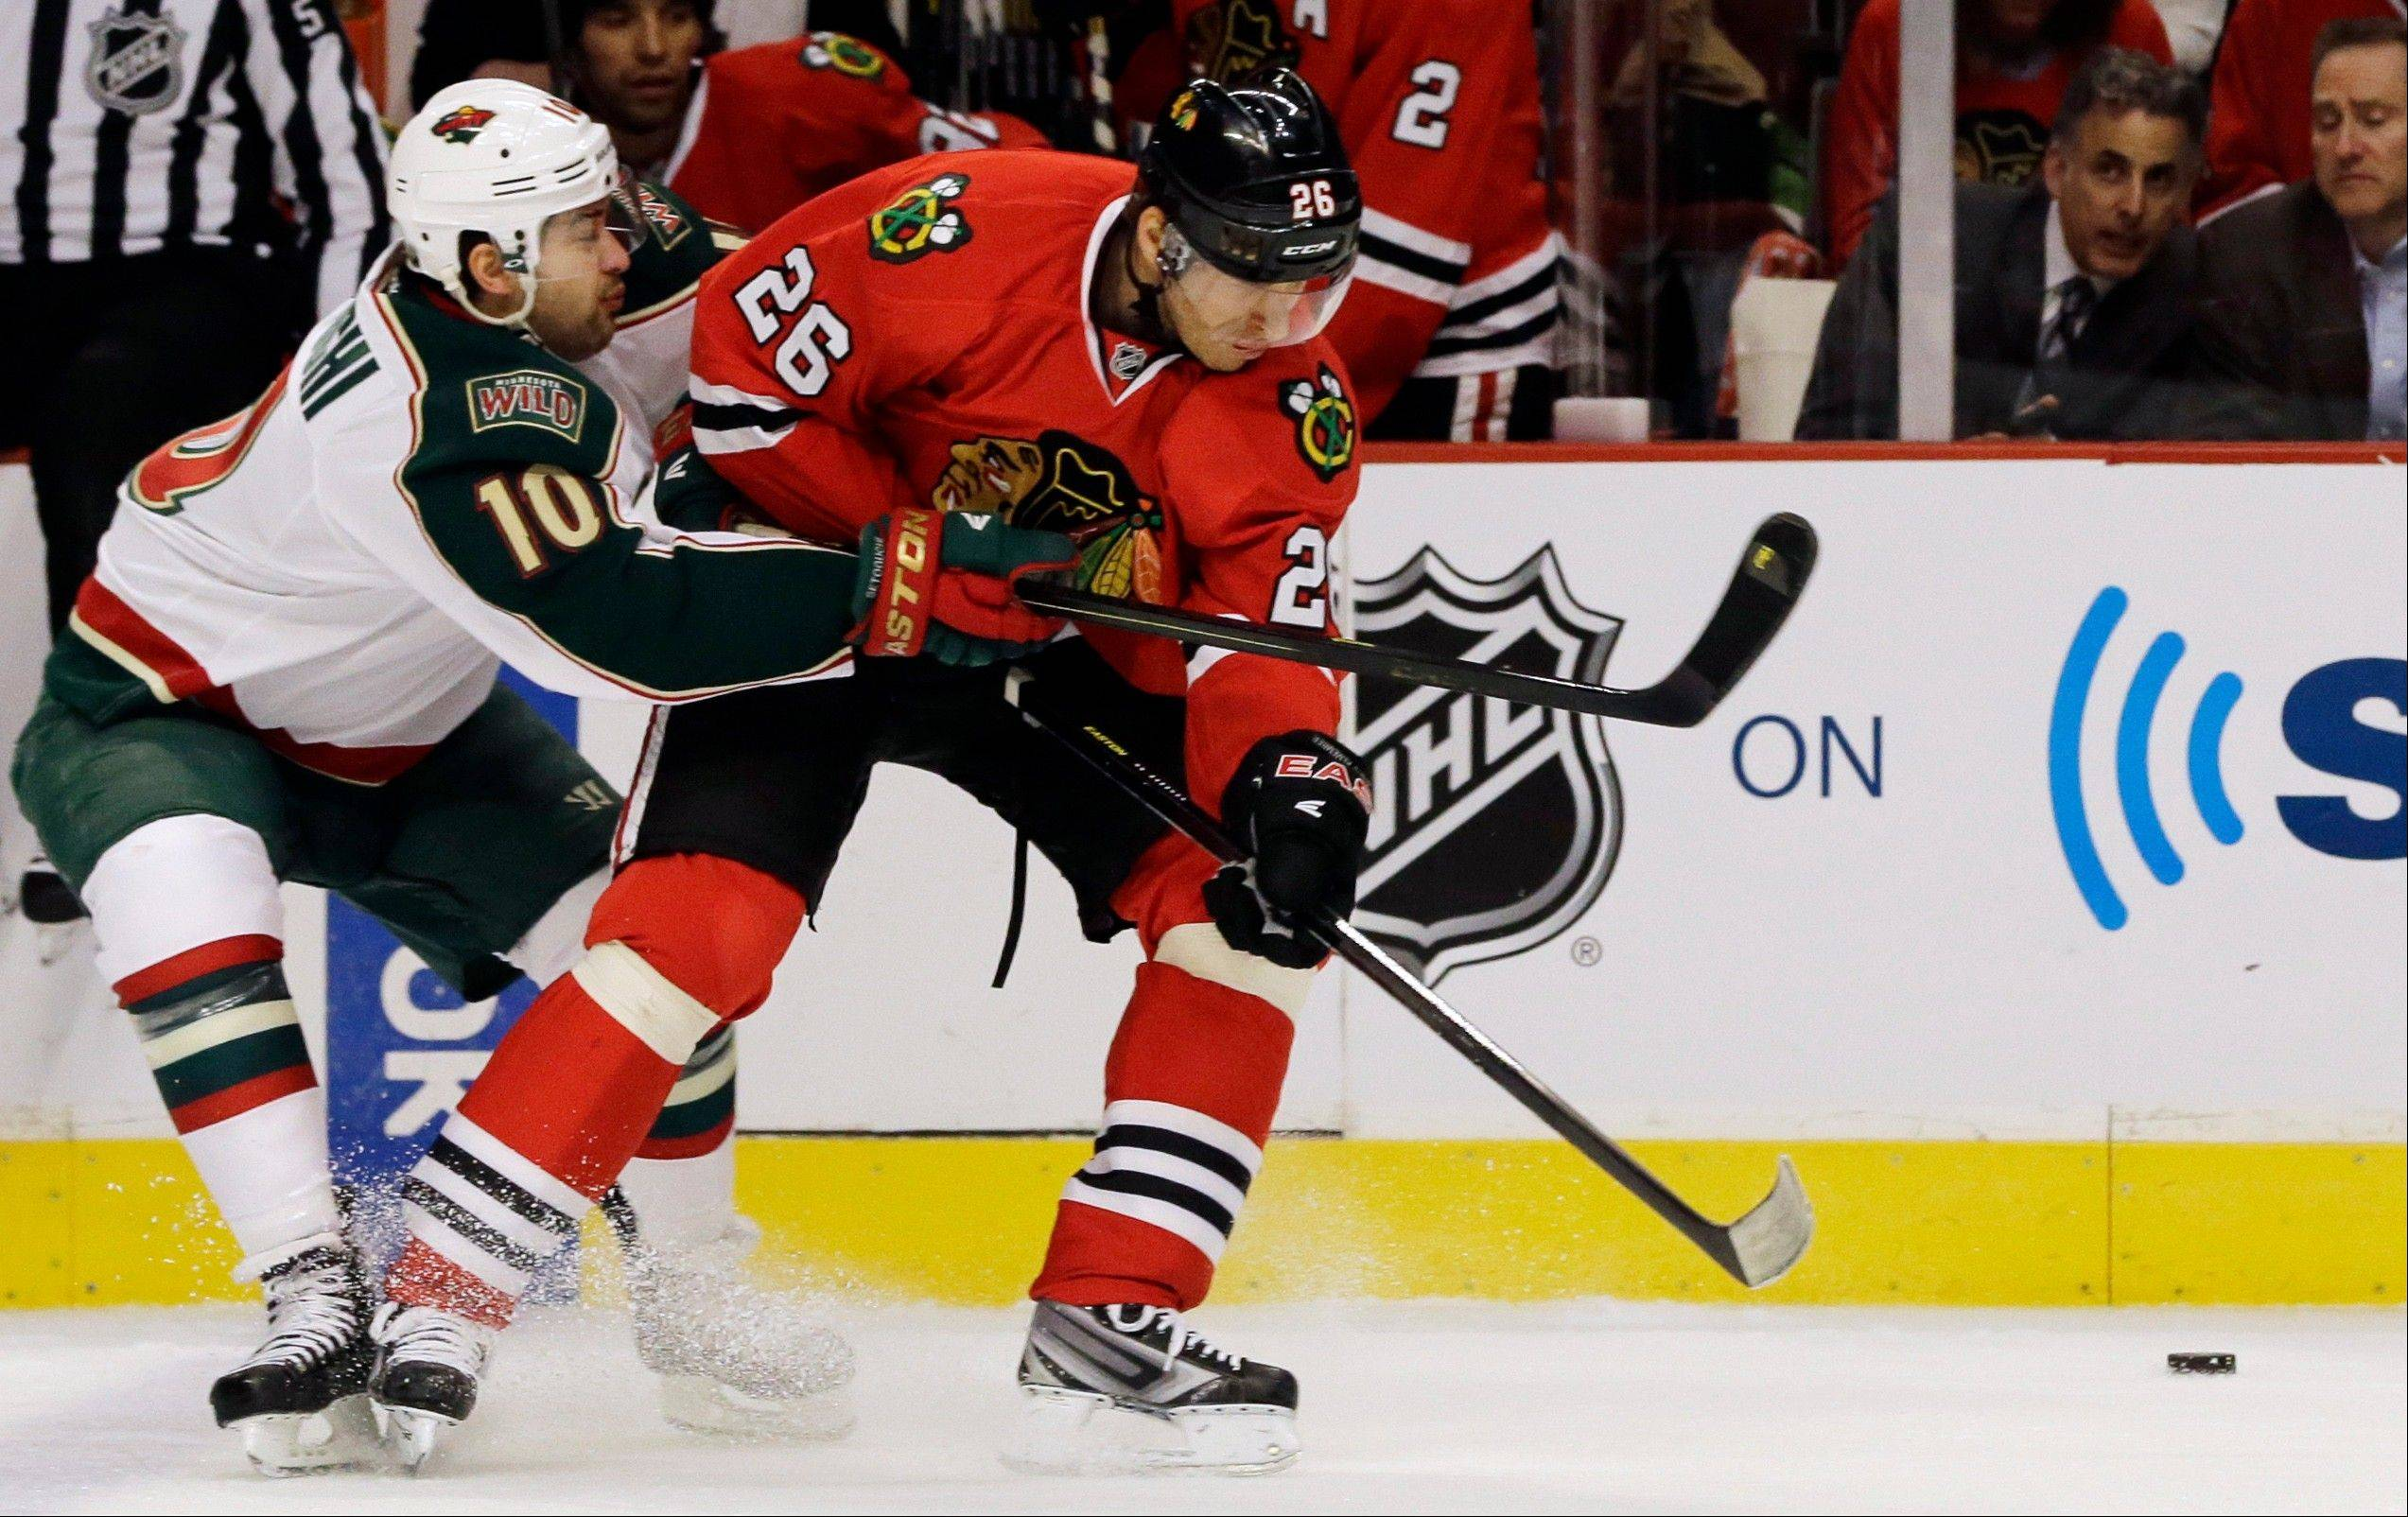 Minnesota Wild's Devin Setoguchi, left, battles for the puck with Chicago Blackhawks' Michal Handzus during the first period of Game 2 of an NHL hockey Stanley Cup first-round playoff series in Chicago, Friday, May 3, 2013. (AP Photo/Nam Y. Huh)